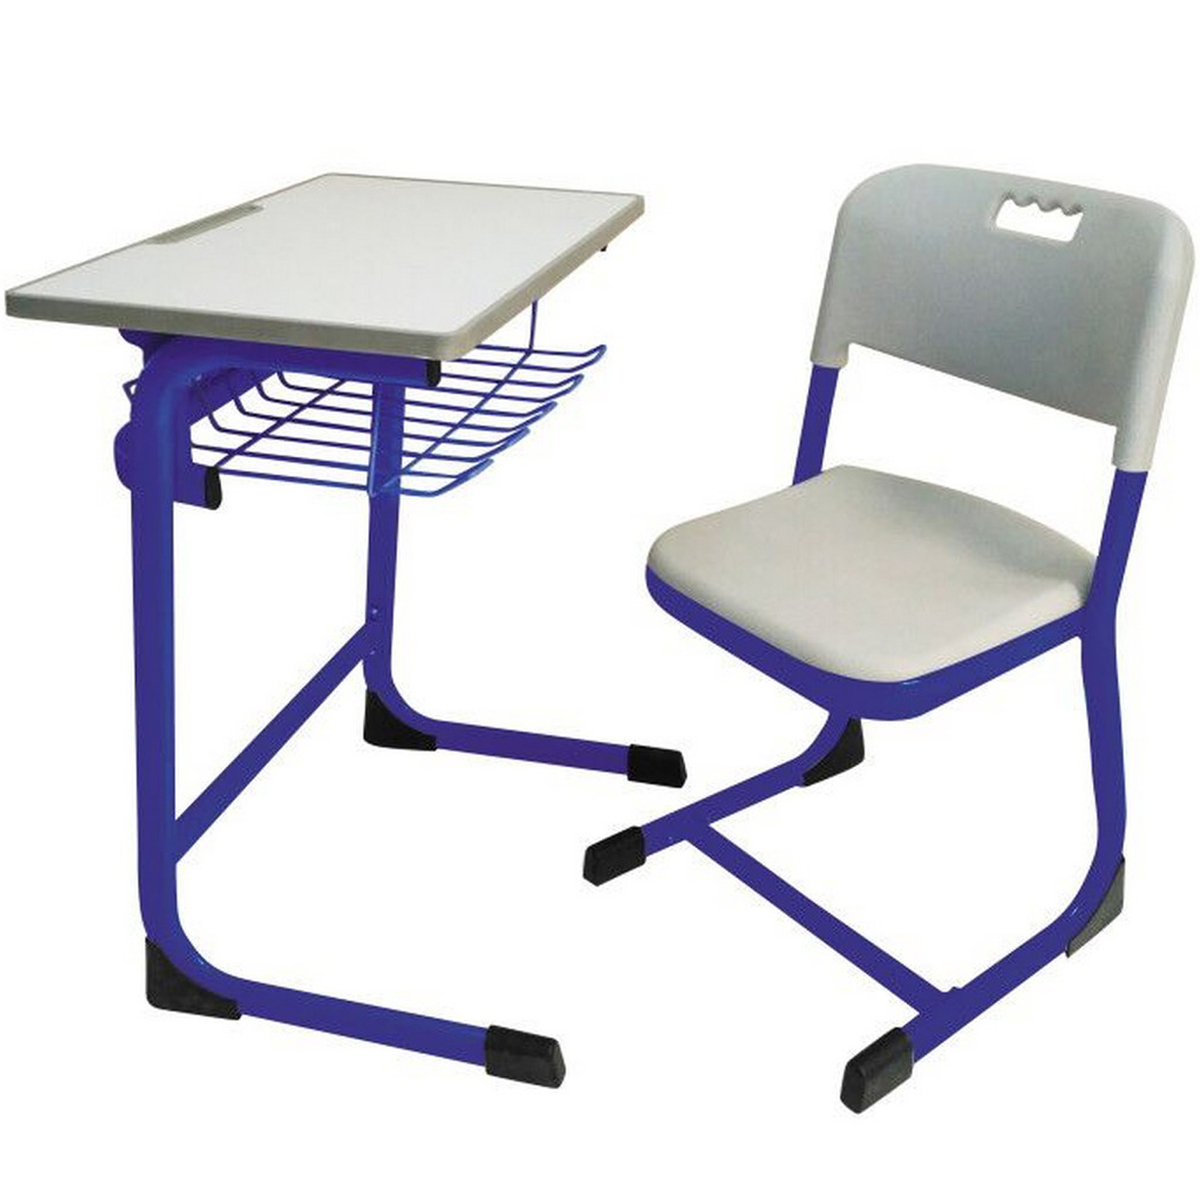 Home Style Study Table + Chair KTD9 Blue